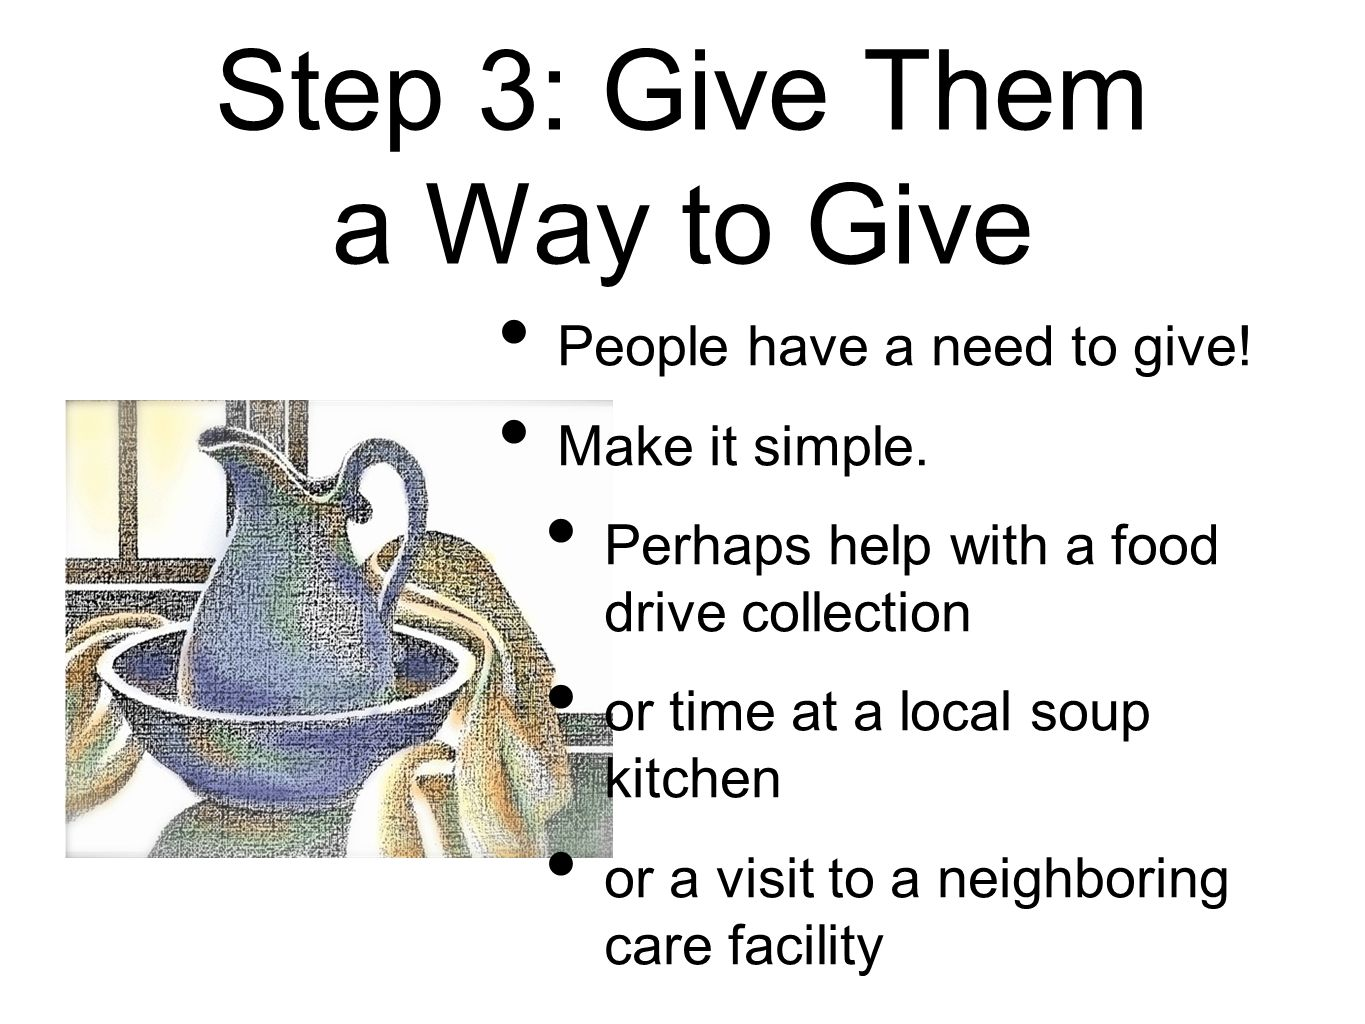 Step 3: Give Them a Way to Give People have a need to give! Make it simple. Perhaps help with a food drive collection or time at a local soup kitchen